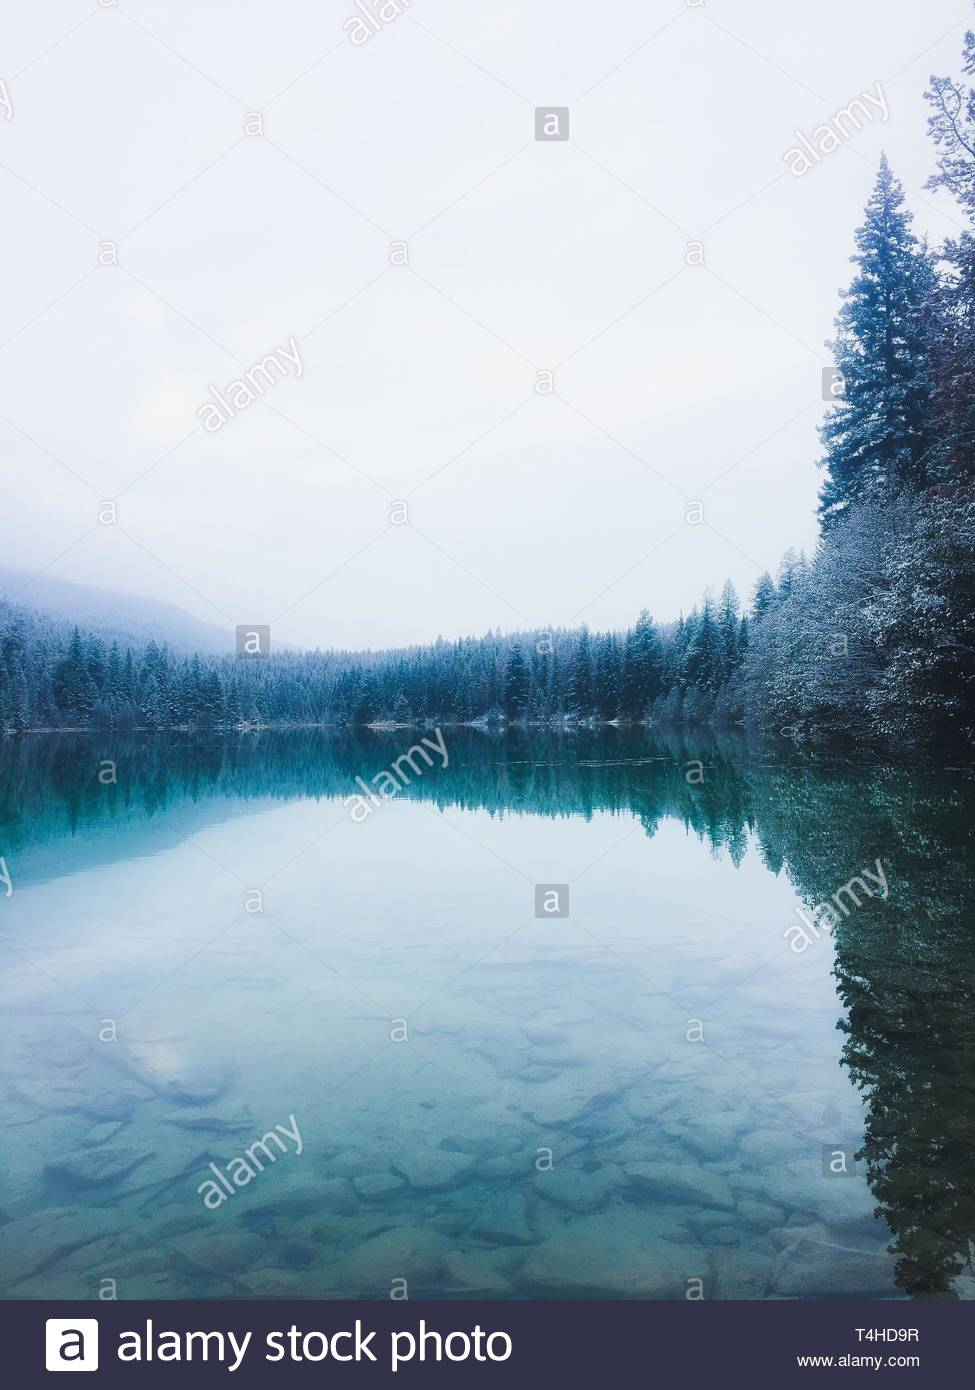 body of water - Stock Image